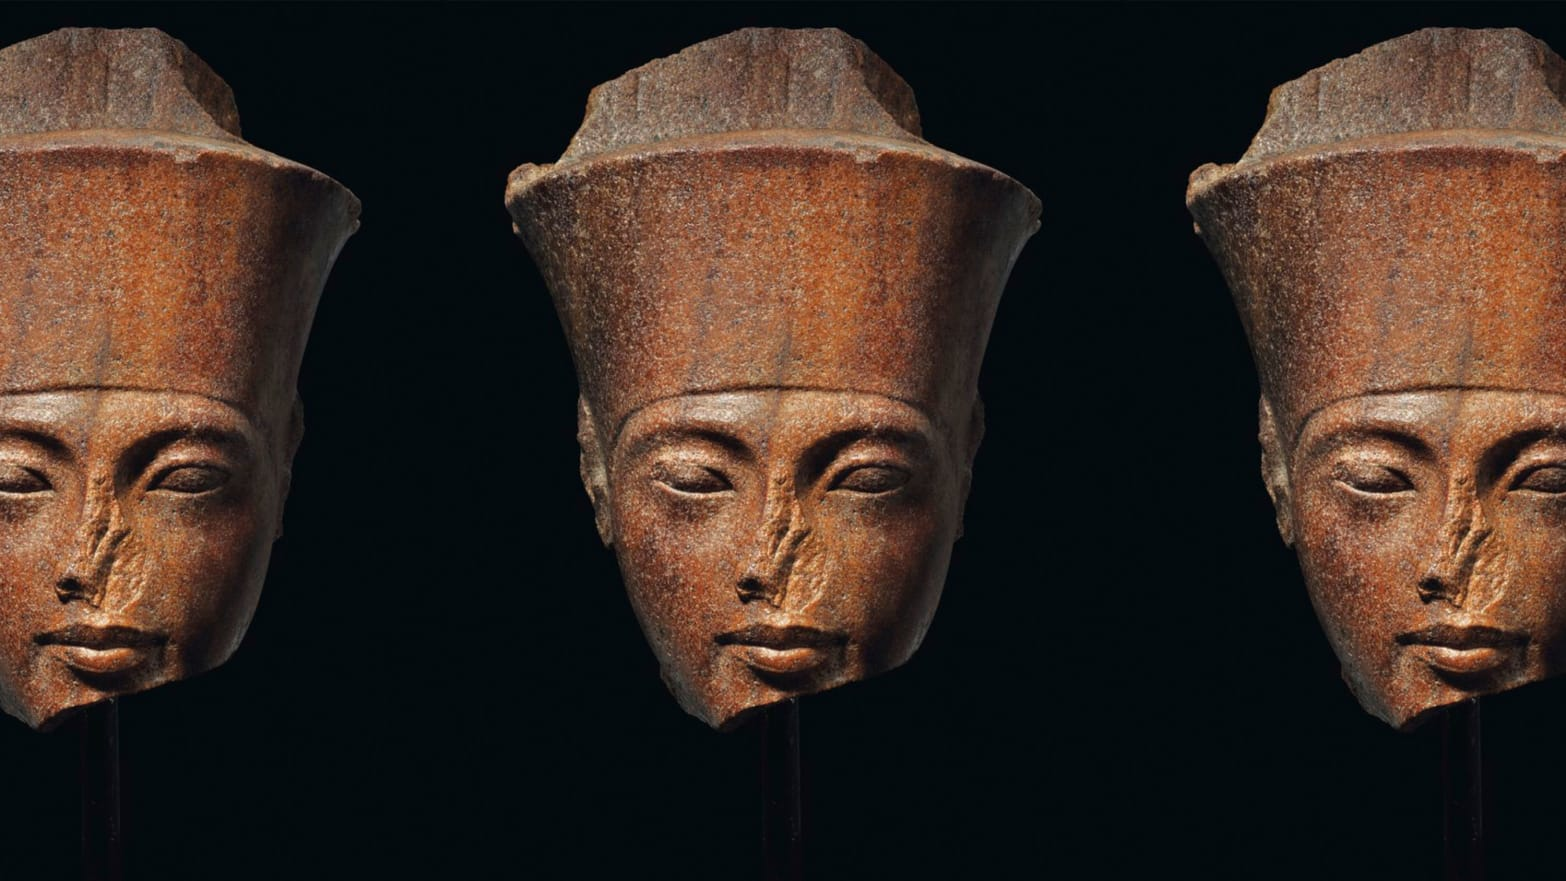 King Tut Head Sold at Christie's Auction Embroiled in Controversy